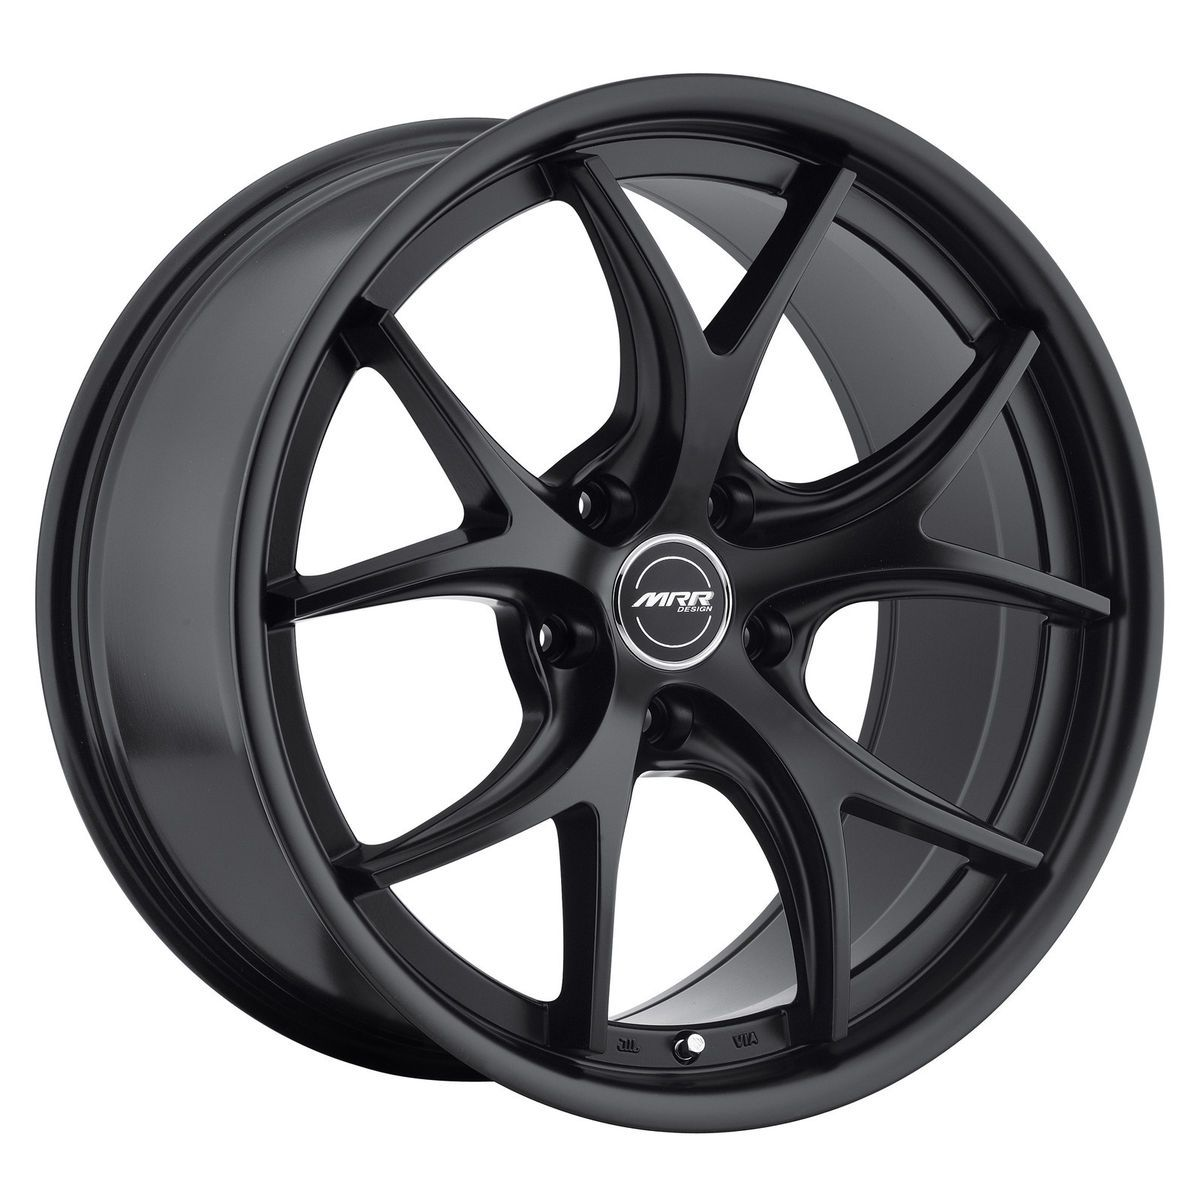 19 MRR GT8 Matte Black Wheels Rims Fit Lexus ES GS RX LS SC300 sc400